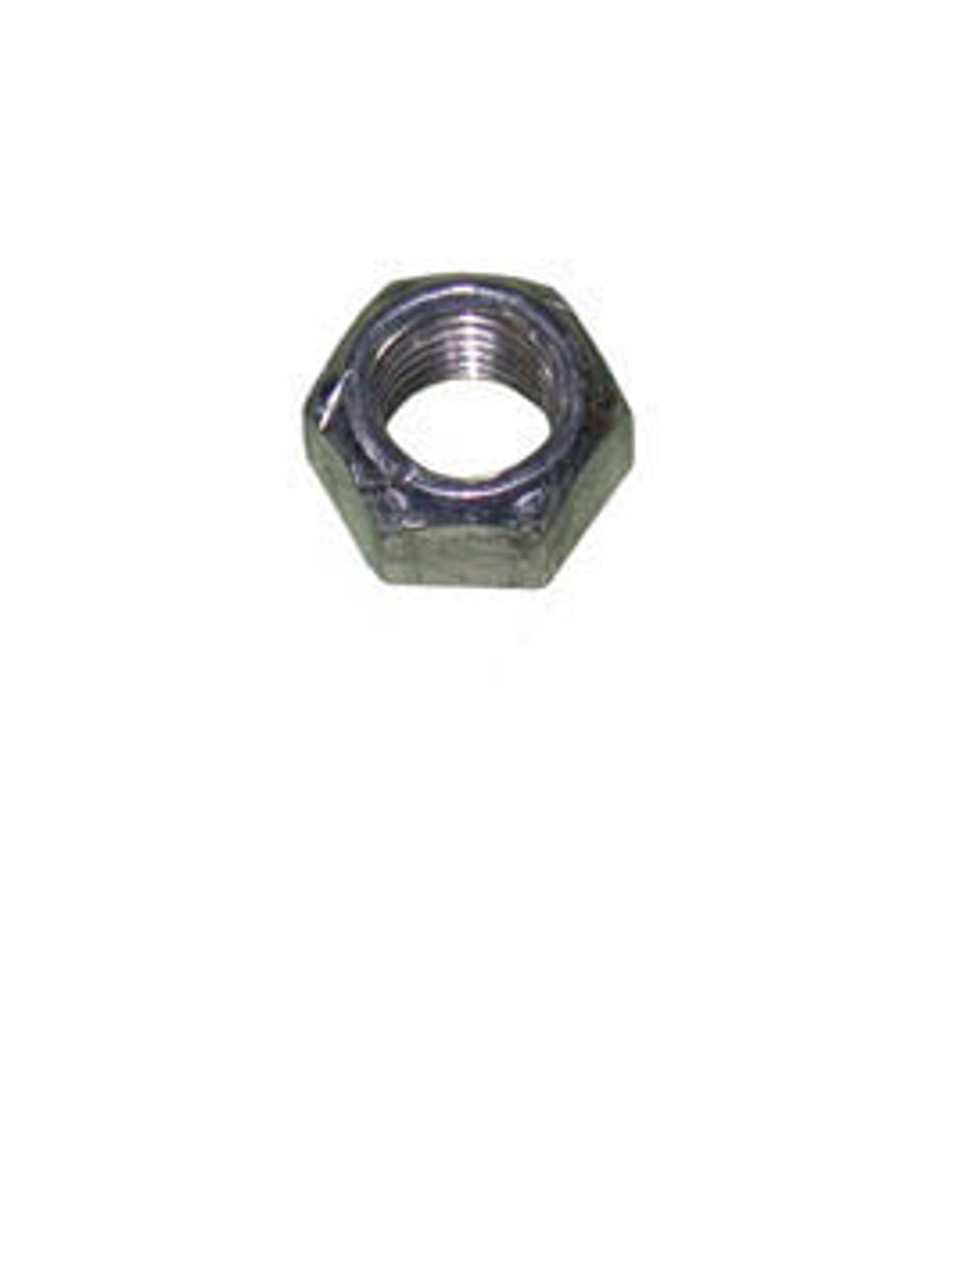 LN38G5ZF ---  Hydro-Act Actuator Lock Nut 1747